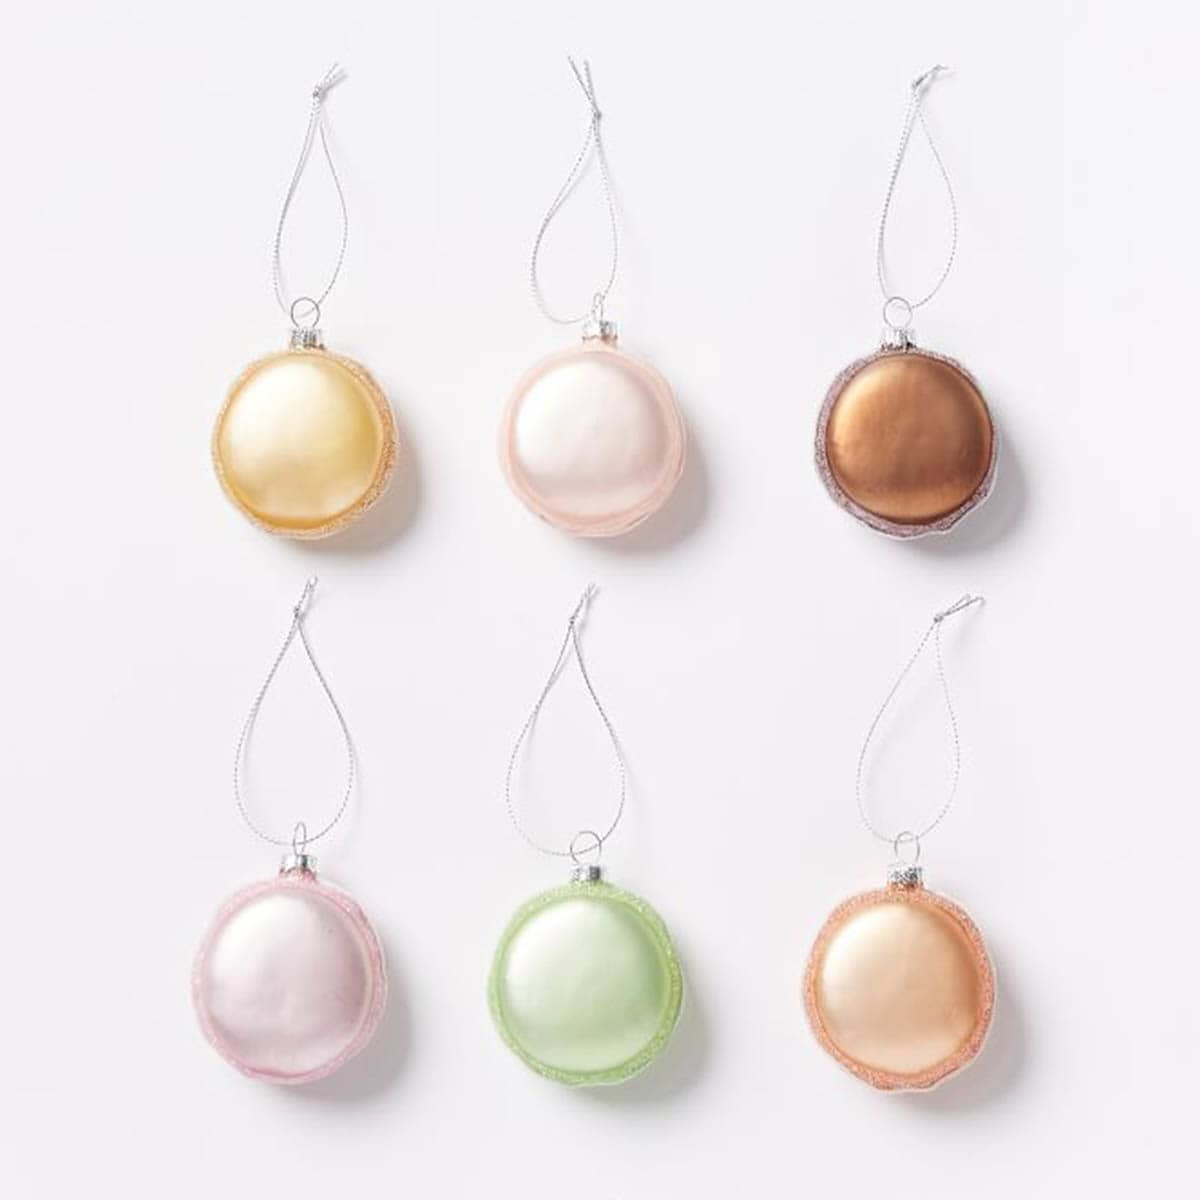 10 Christmas Ornaments for Food-Lovers: gallery image 6